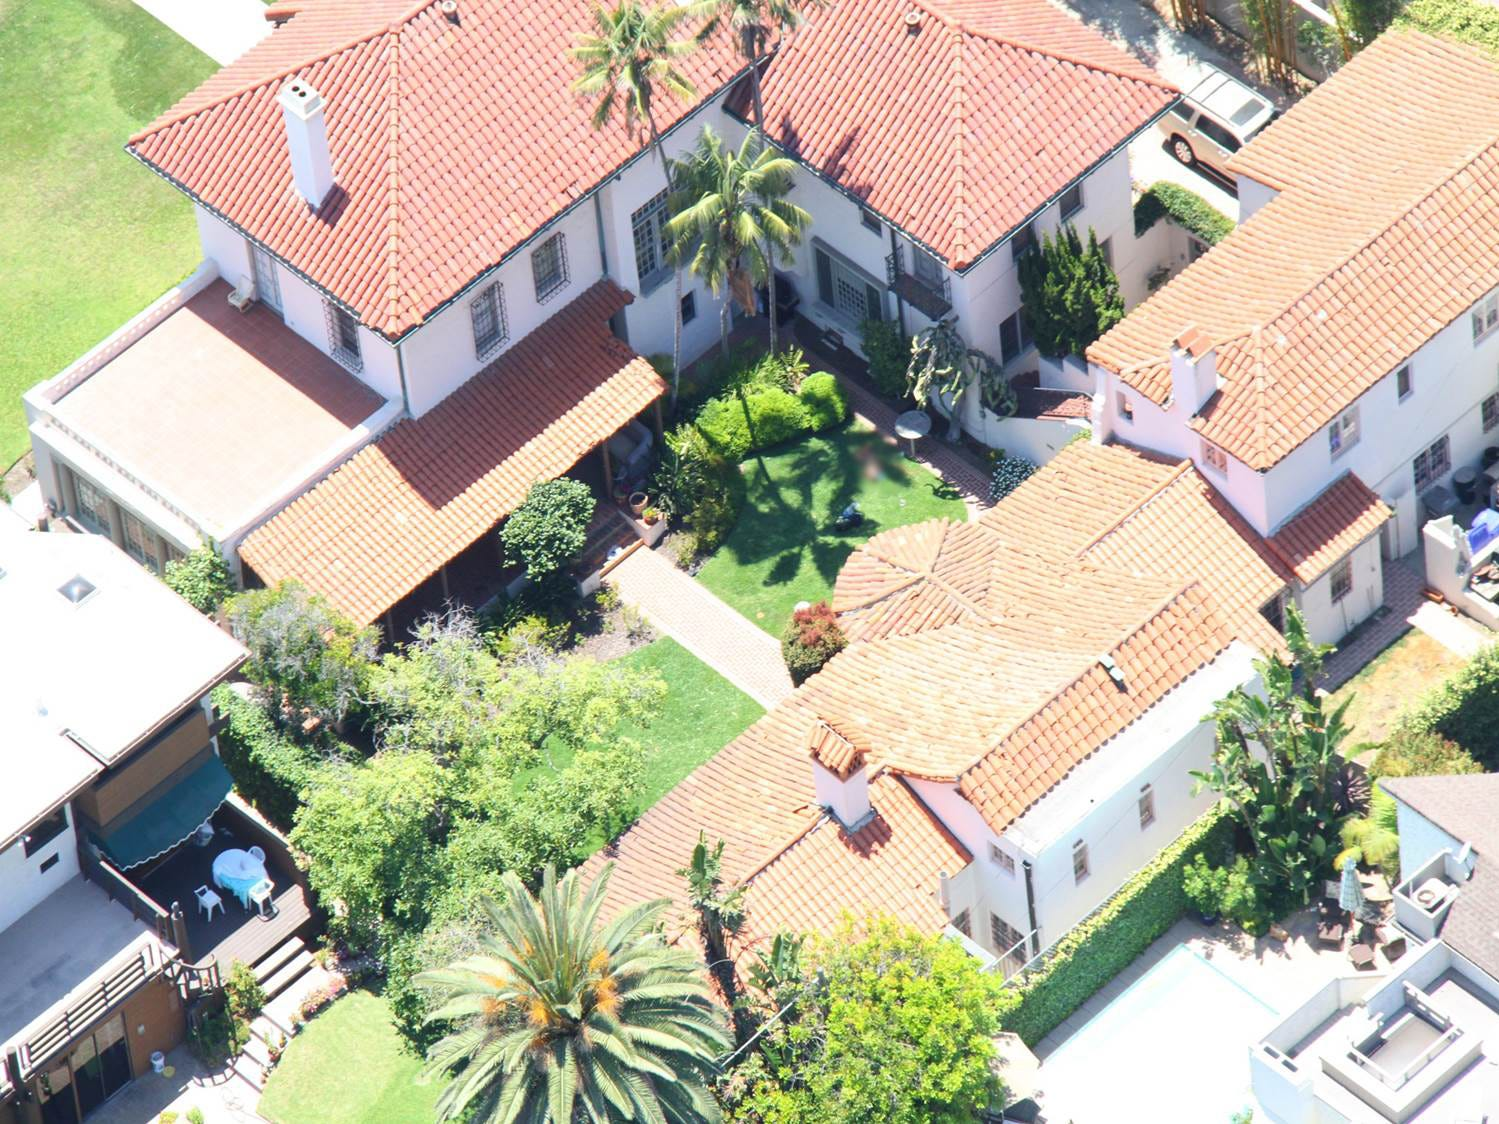 An aerial view of the Spreckels Mansion in Coronado, Calif., where Rebecca Zahau was found hanged in 2011.